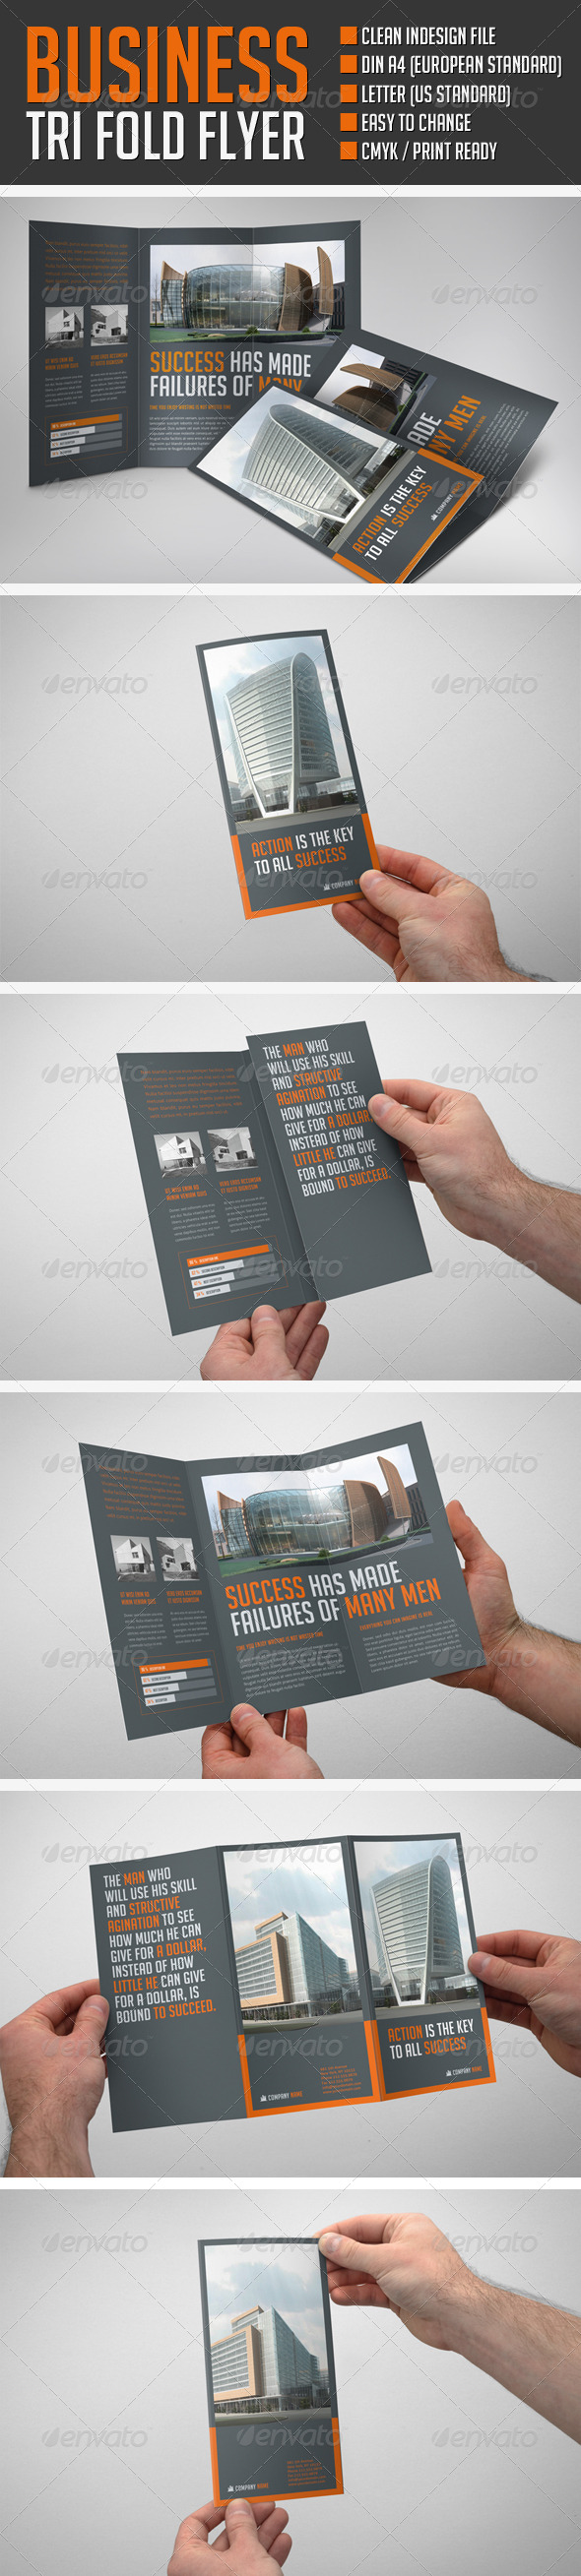 Business Flyer Dark - Print Templates